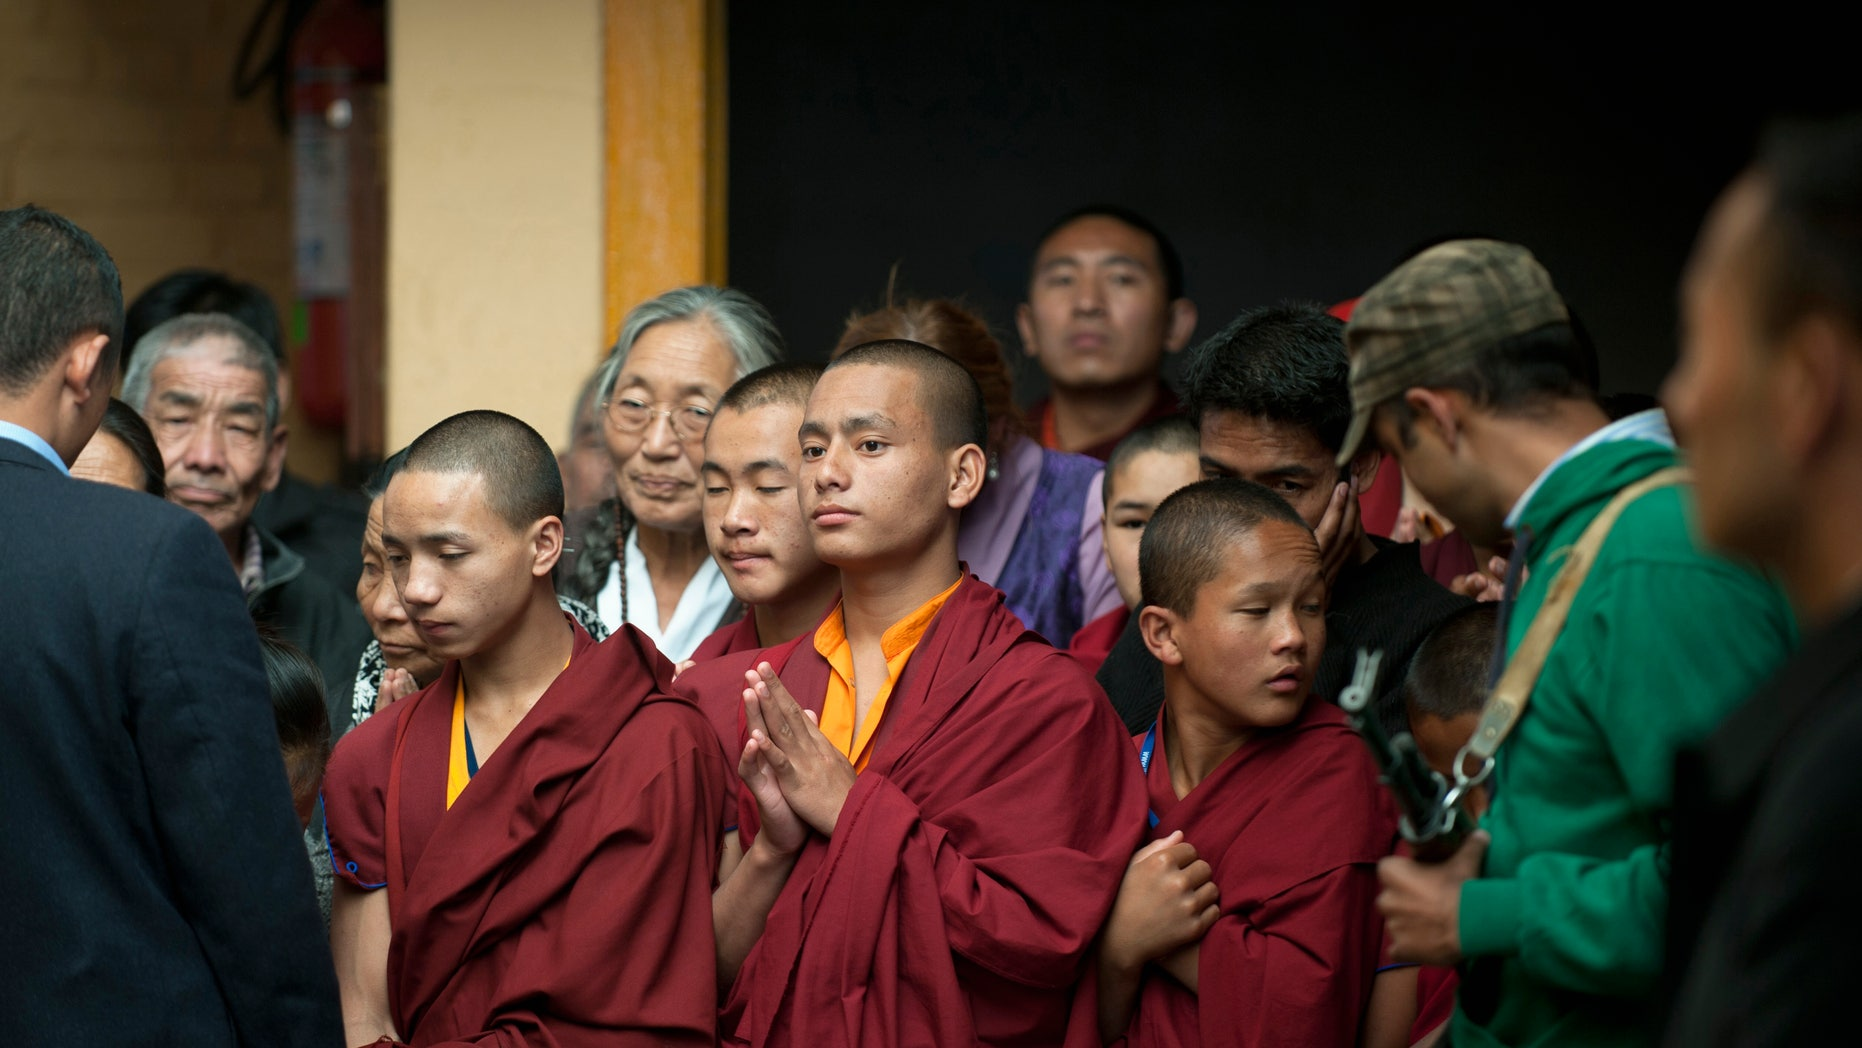 Oct. 31, 2012: Tibetan Buddhist monks wait to greet their spiritual leader the Dalai Lama, unseen, during a religious talk at the Tsuglakhang temple in Dharmsala, India.